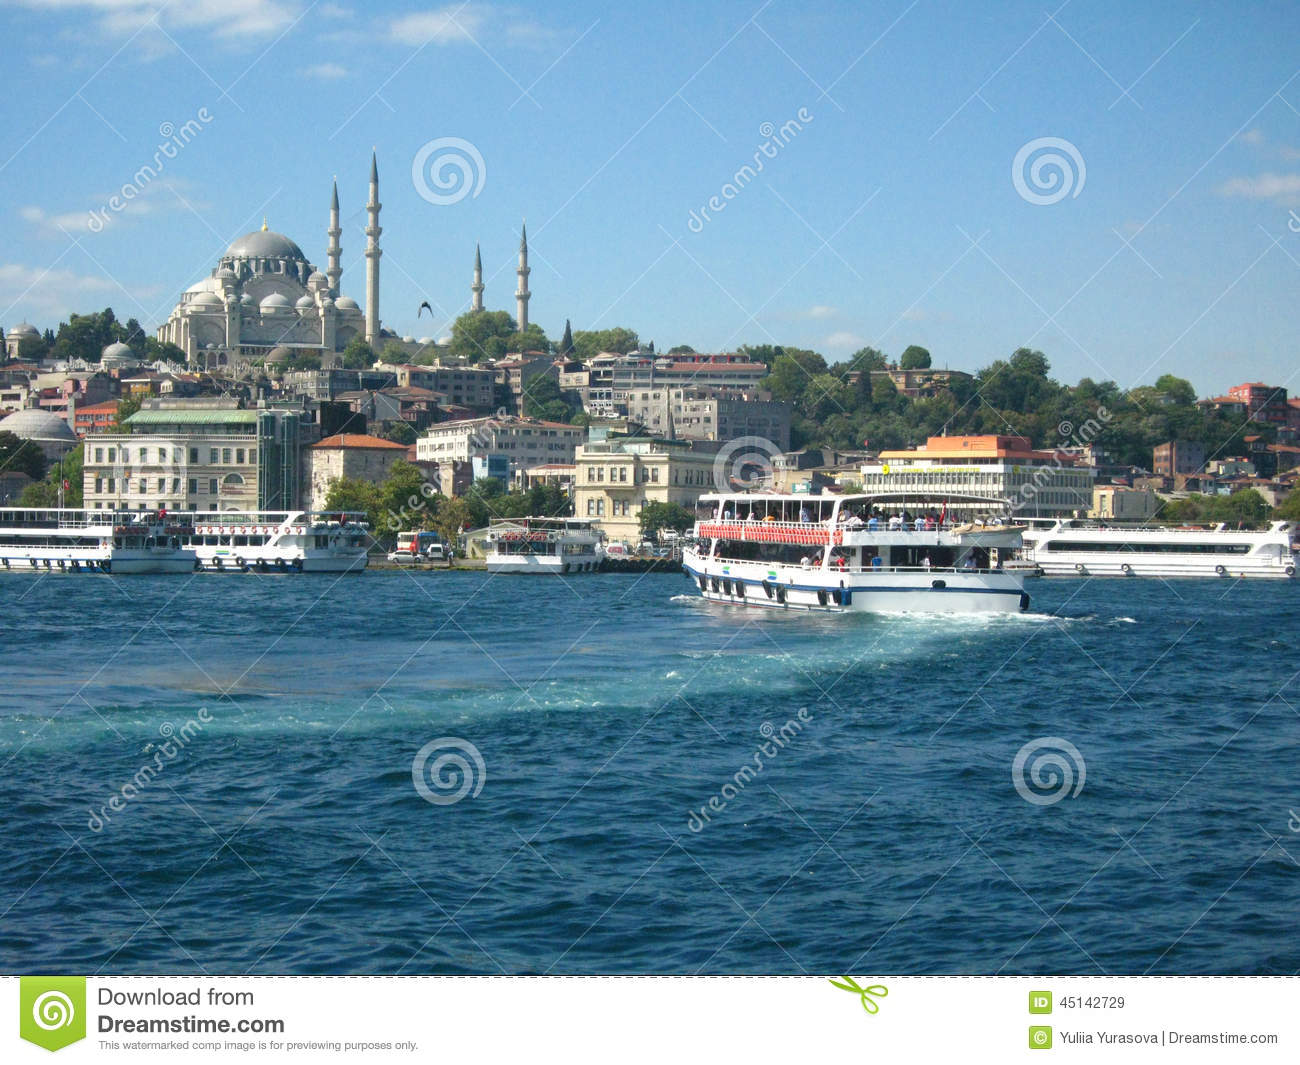 Boats crossiog Bosphorus in the city of Istanbul, Turkey and a mosque with high minarets on the background